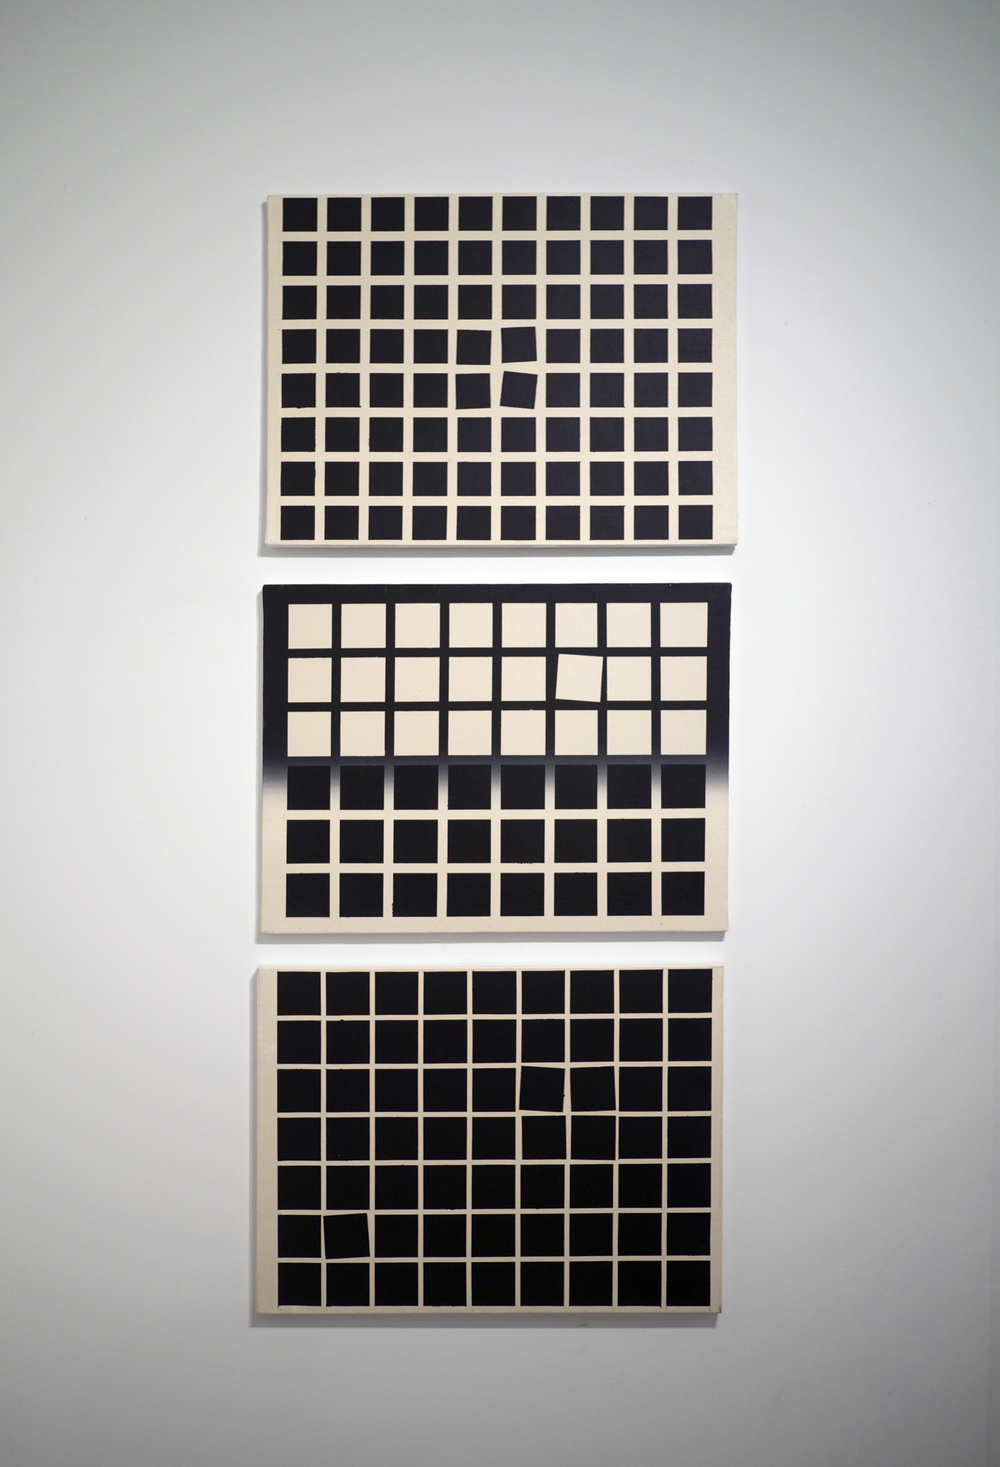 From the top:   Aversion to Order . Acrylic on canvas. 18 x 24 inches. 2013.   Recording Order . Acrylic on canvas. 18 x 24 inches. 2013.   Influence of Disorder . Acrylic on canvas. 18 x 24 inches. 2013.